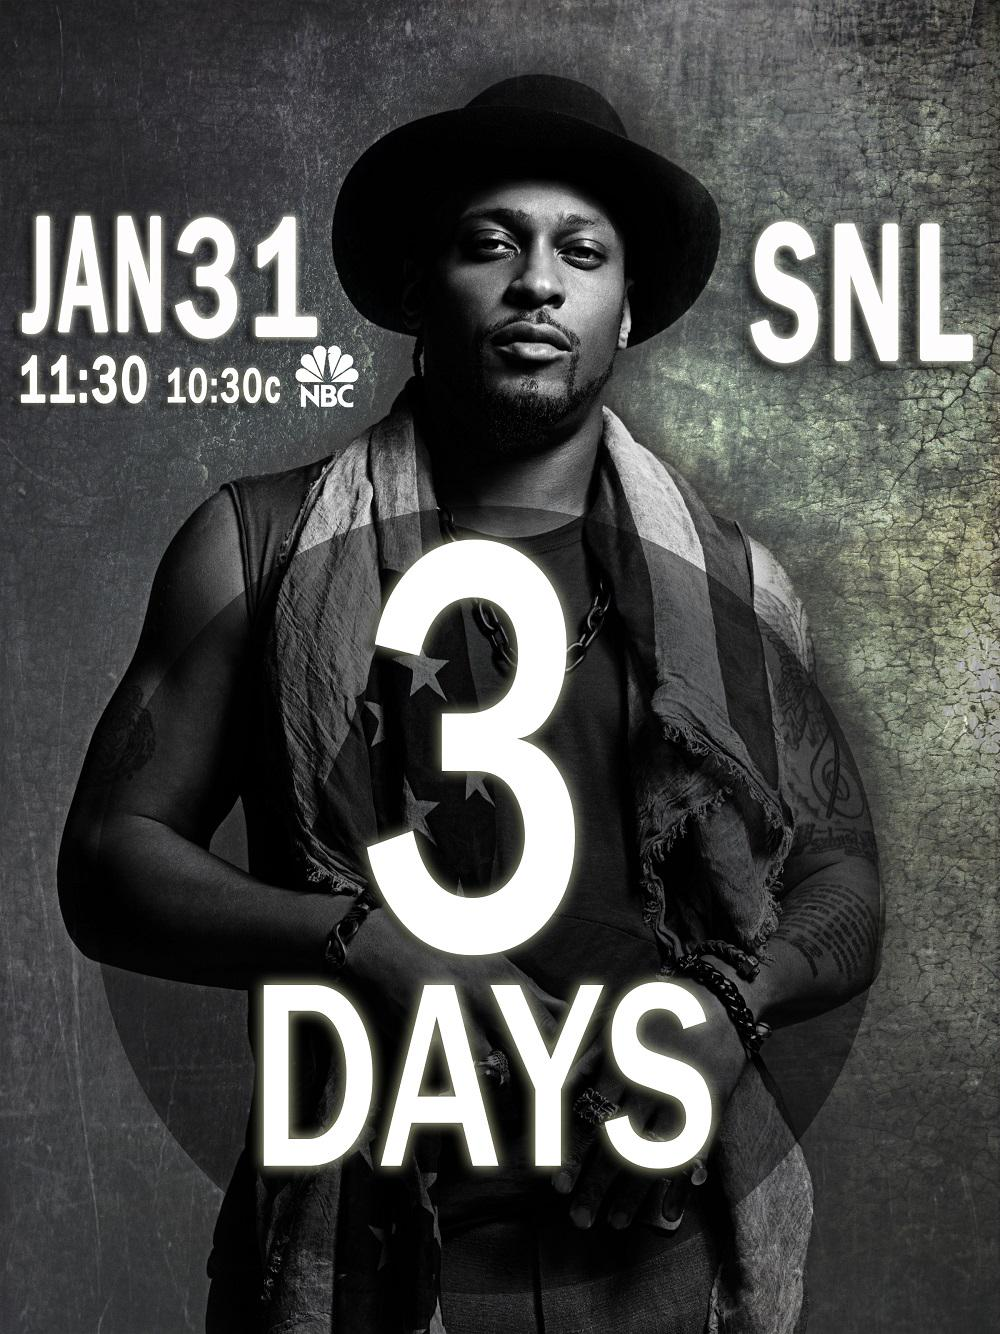 RT @TheDangelo: The revolution will be televised http://t.co/wxAt7IKJ9a